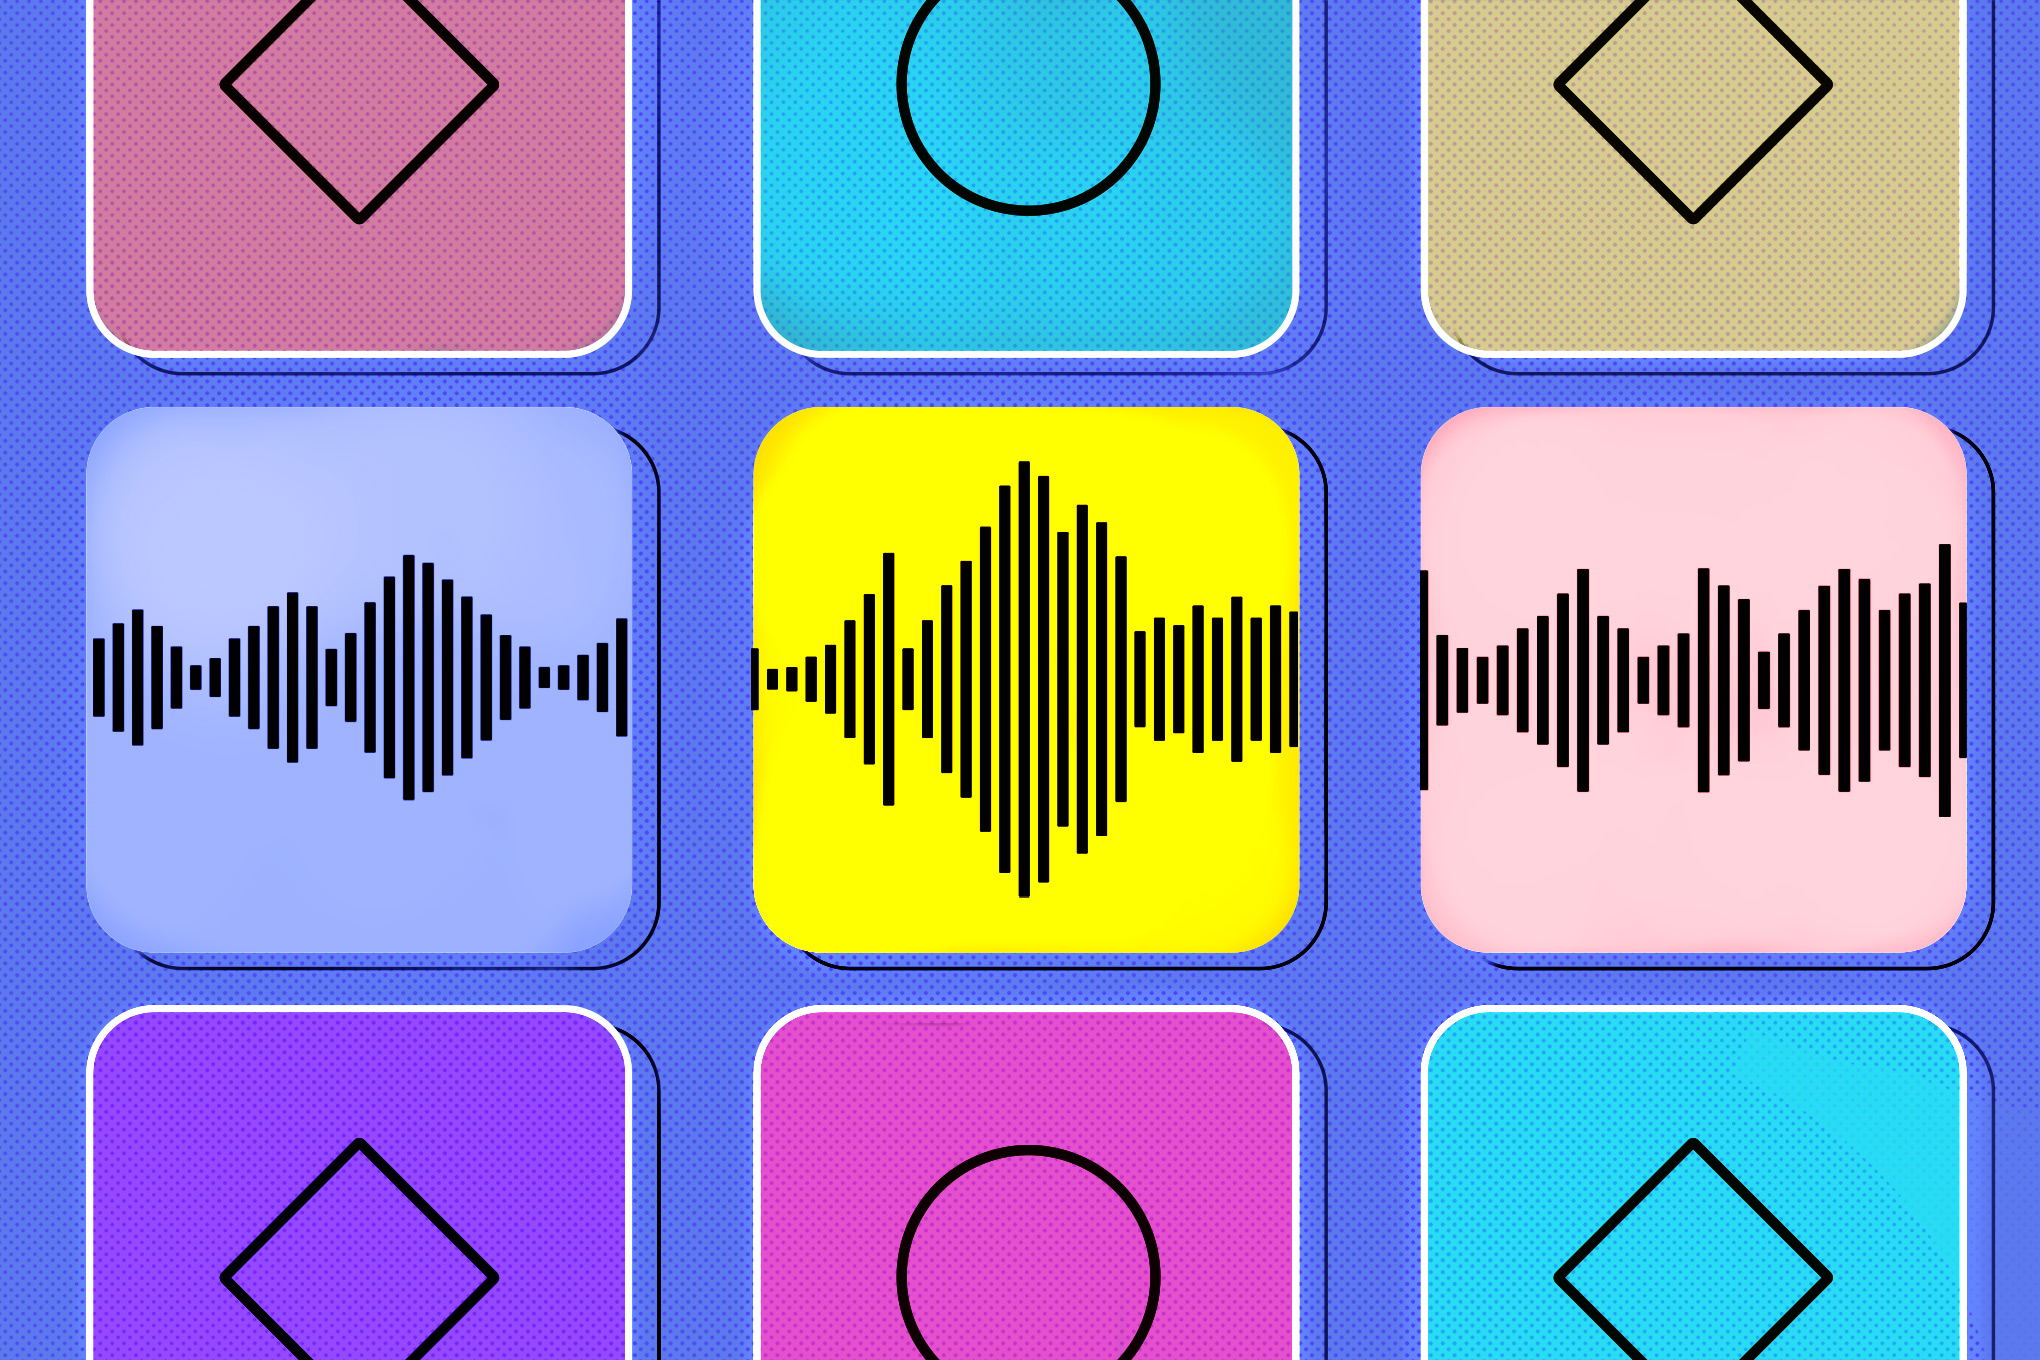 Nine colorful squares on a pale blue background. The middle row of squares have audio waveforms in them.